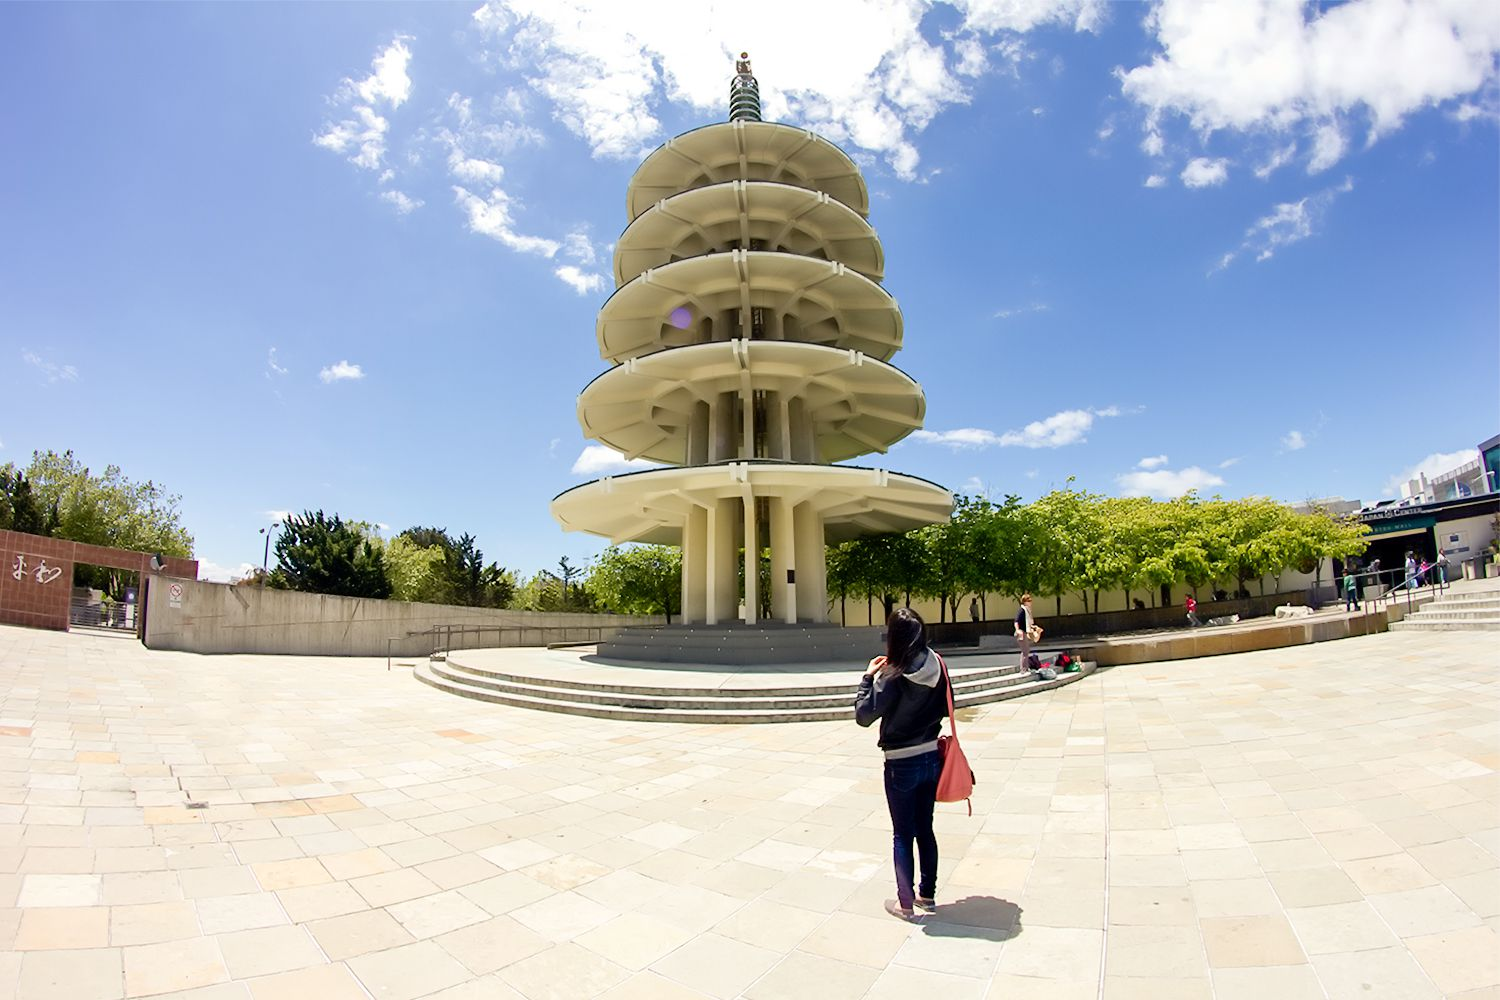 San Francisco Japantown: Top Things to See and Do